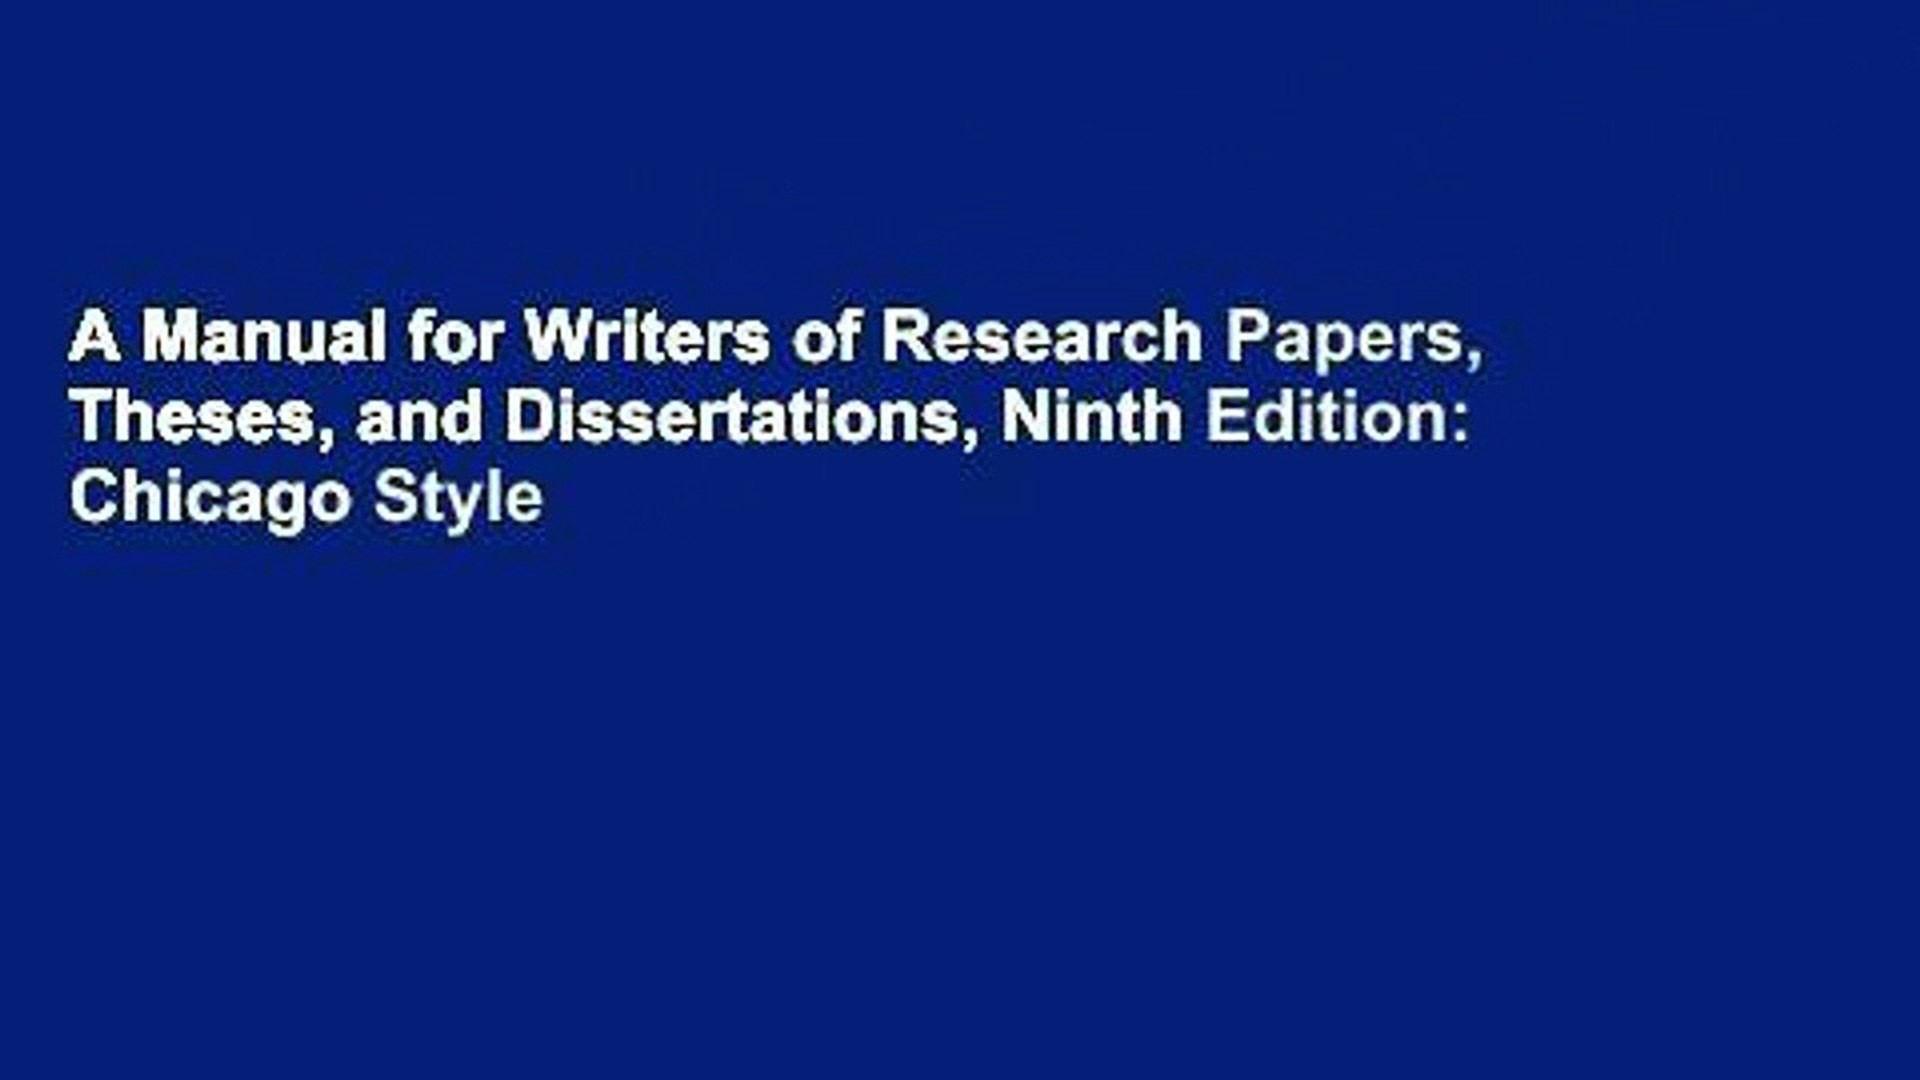 028 Manual For Writers Of Researchs Theses And Dissertations X1080 V4x Sensational A Research Papers Ed. 8 8th Edition Ninth Pdf 1920